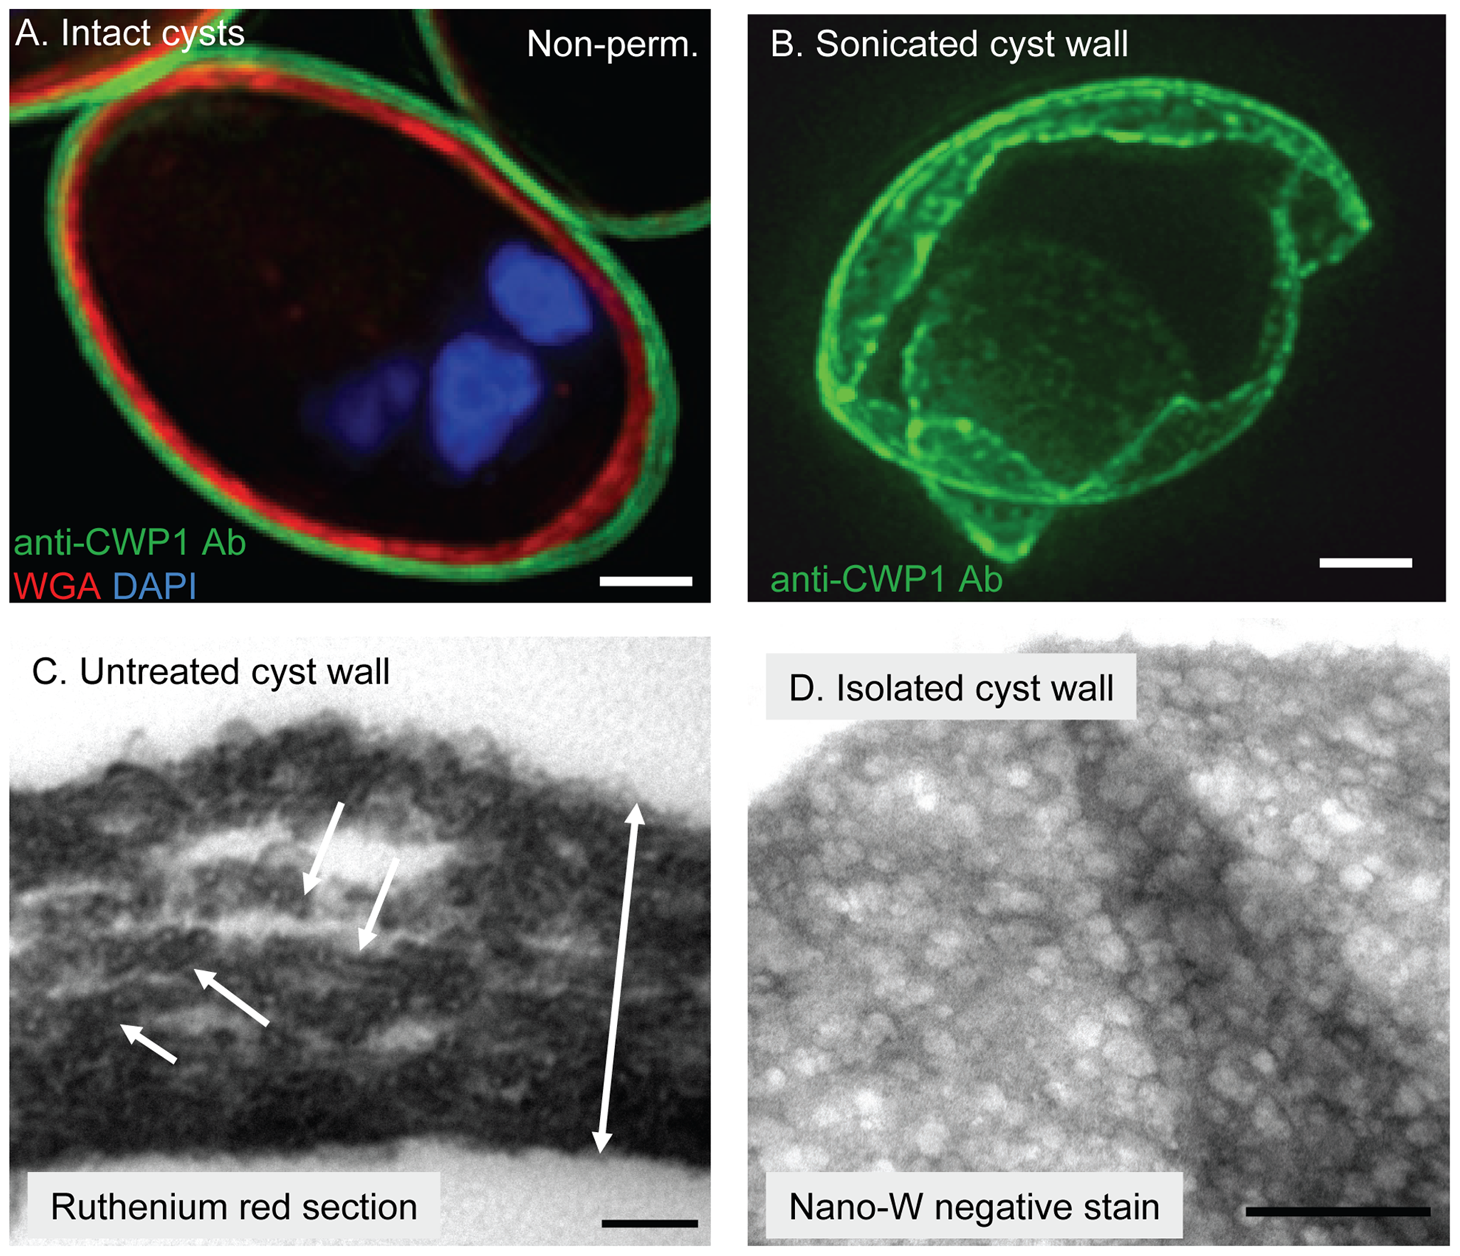 In intact <i>Giardia</i> cyst walls, curled fibrils of the GalNAc homopolymer form a protein-coated lattice that is restricted to a narrow plane.